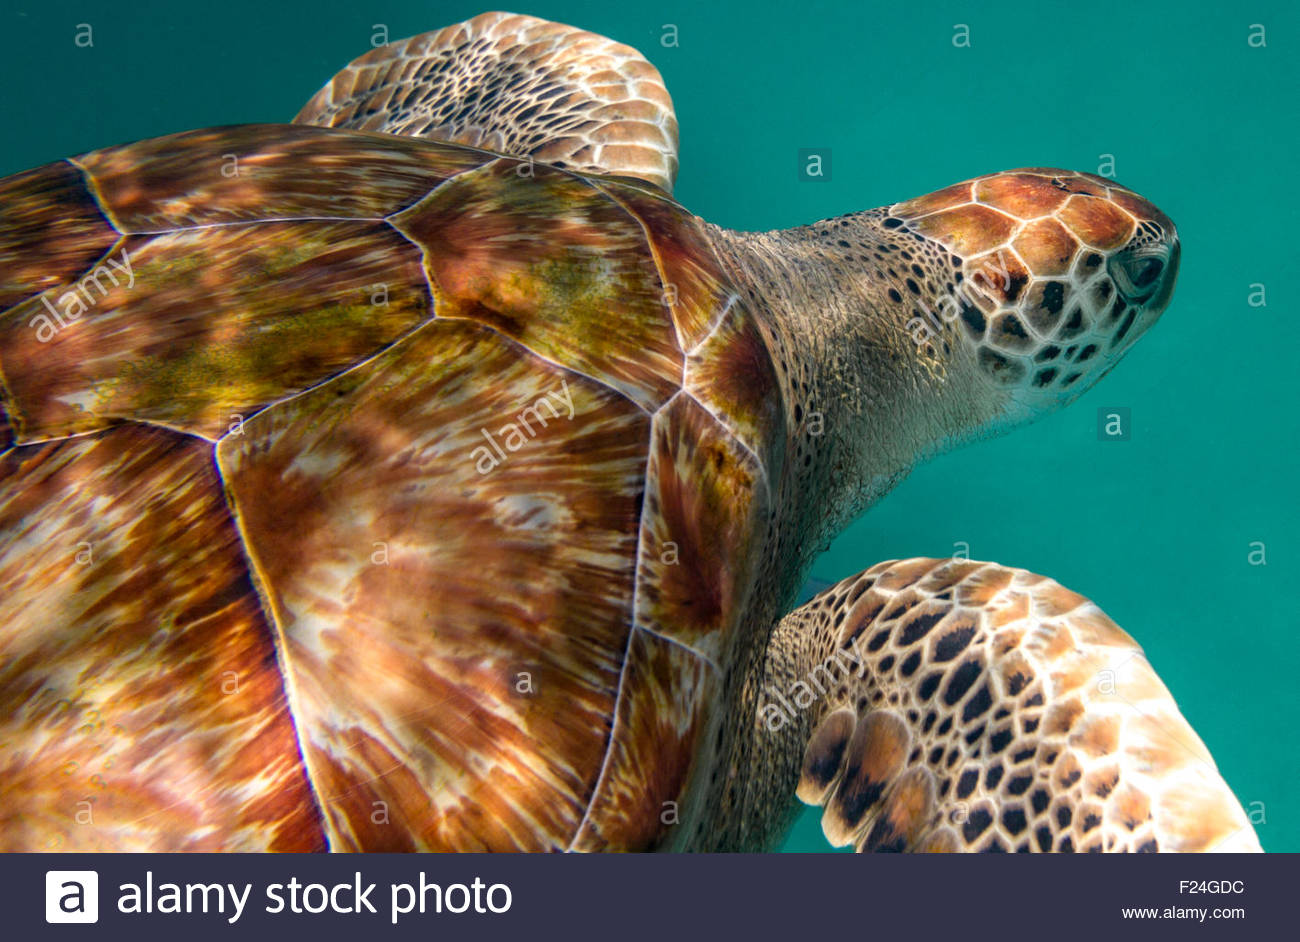 Close up of the shell and head of a hawksbill sea turtle in the Caribbean Sea, Barbados. Stock Photo